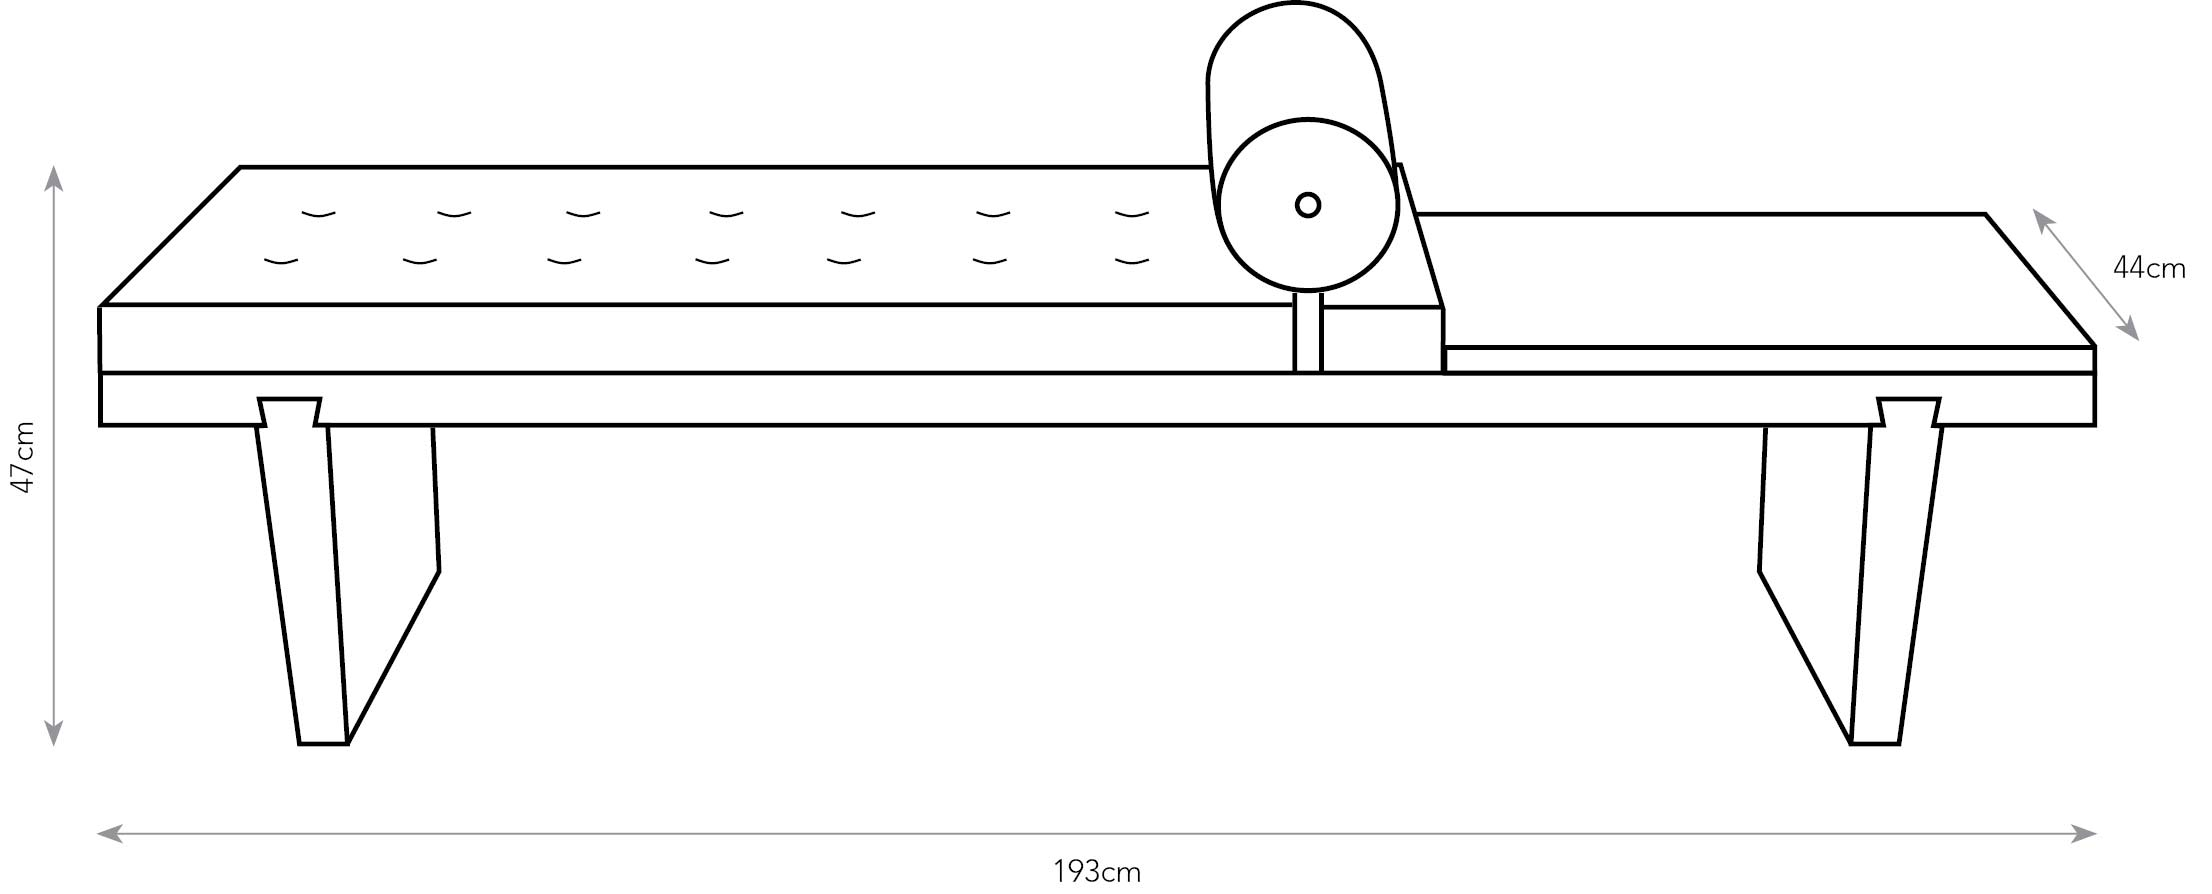 Line drawing of the Mill Bench